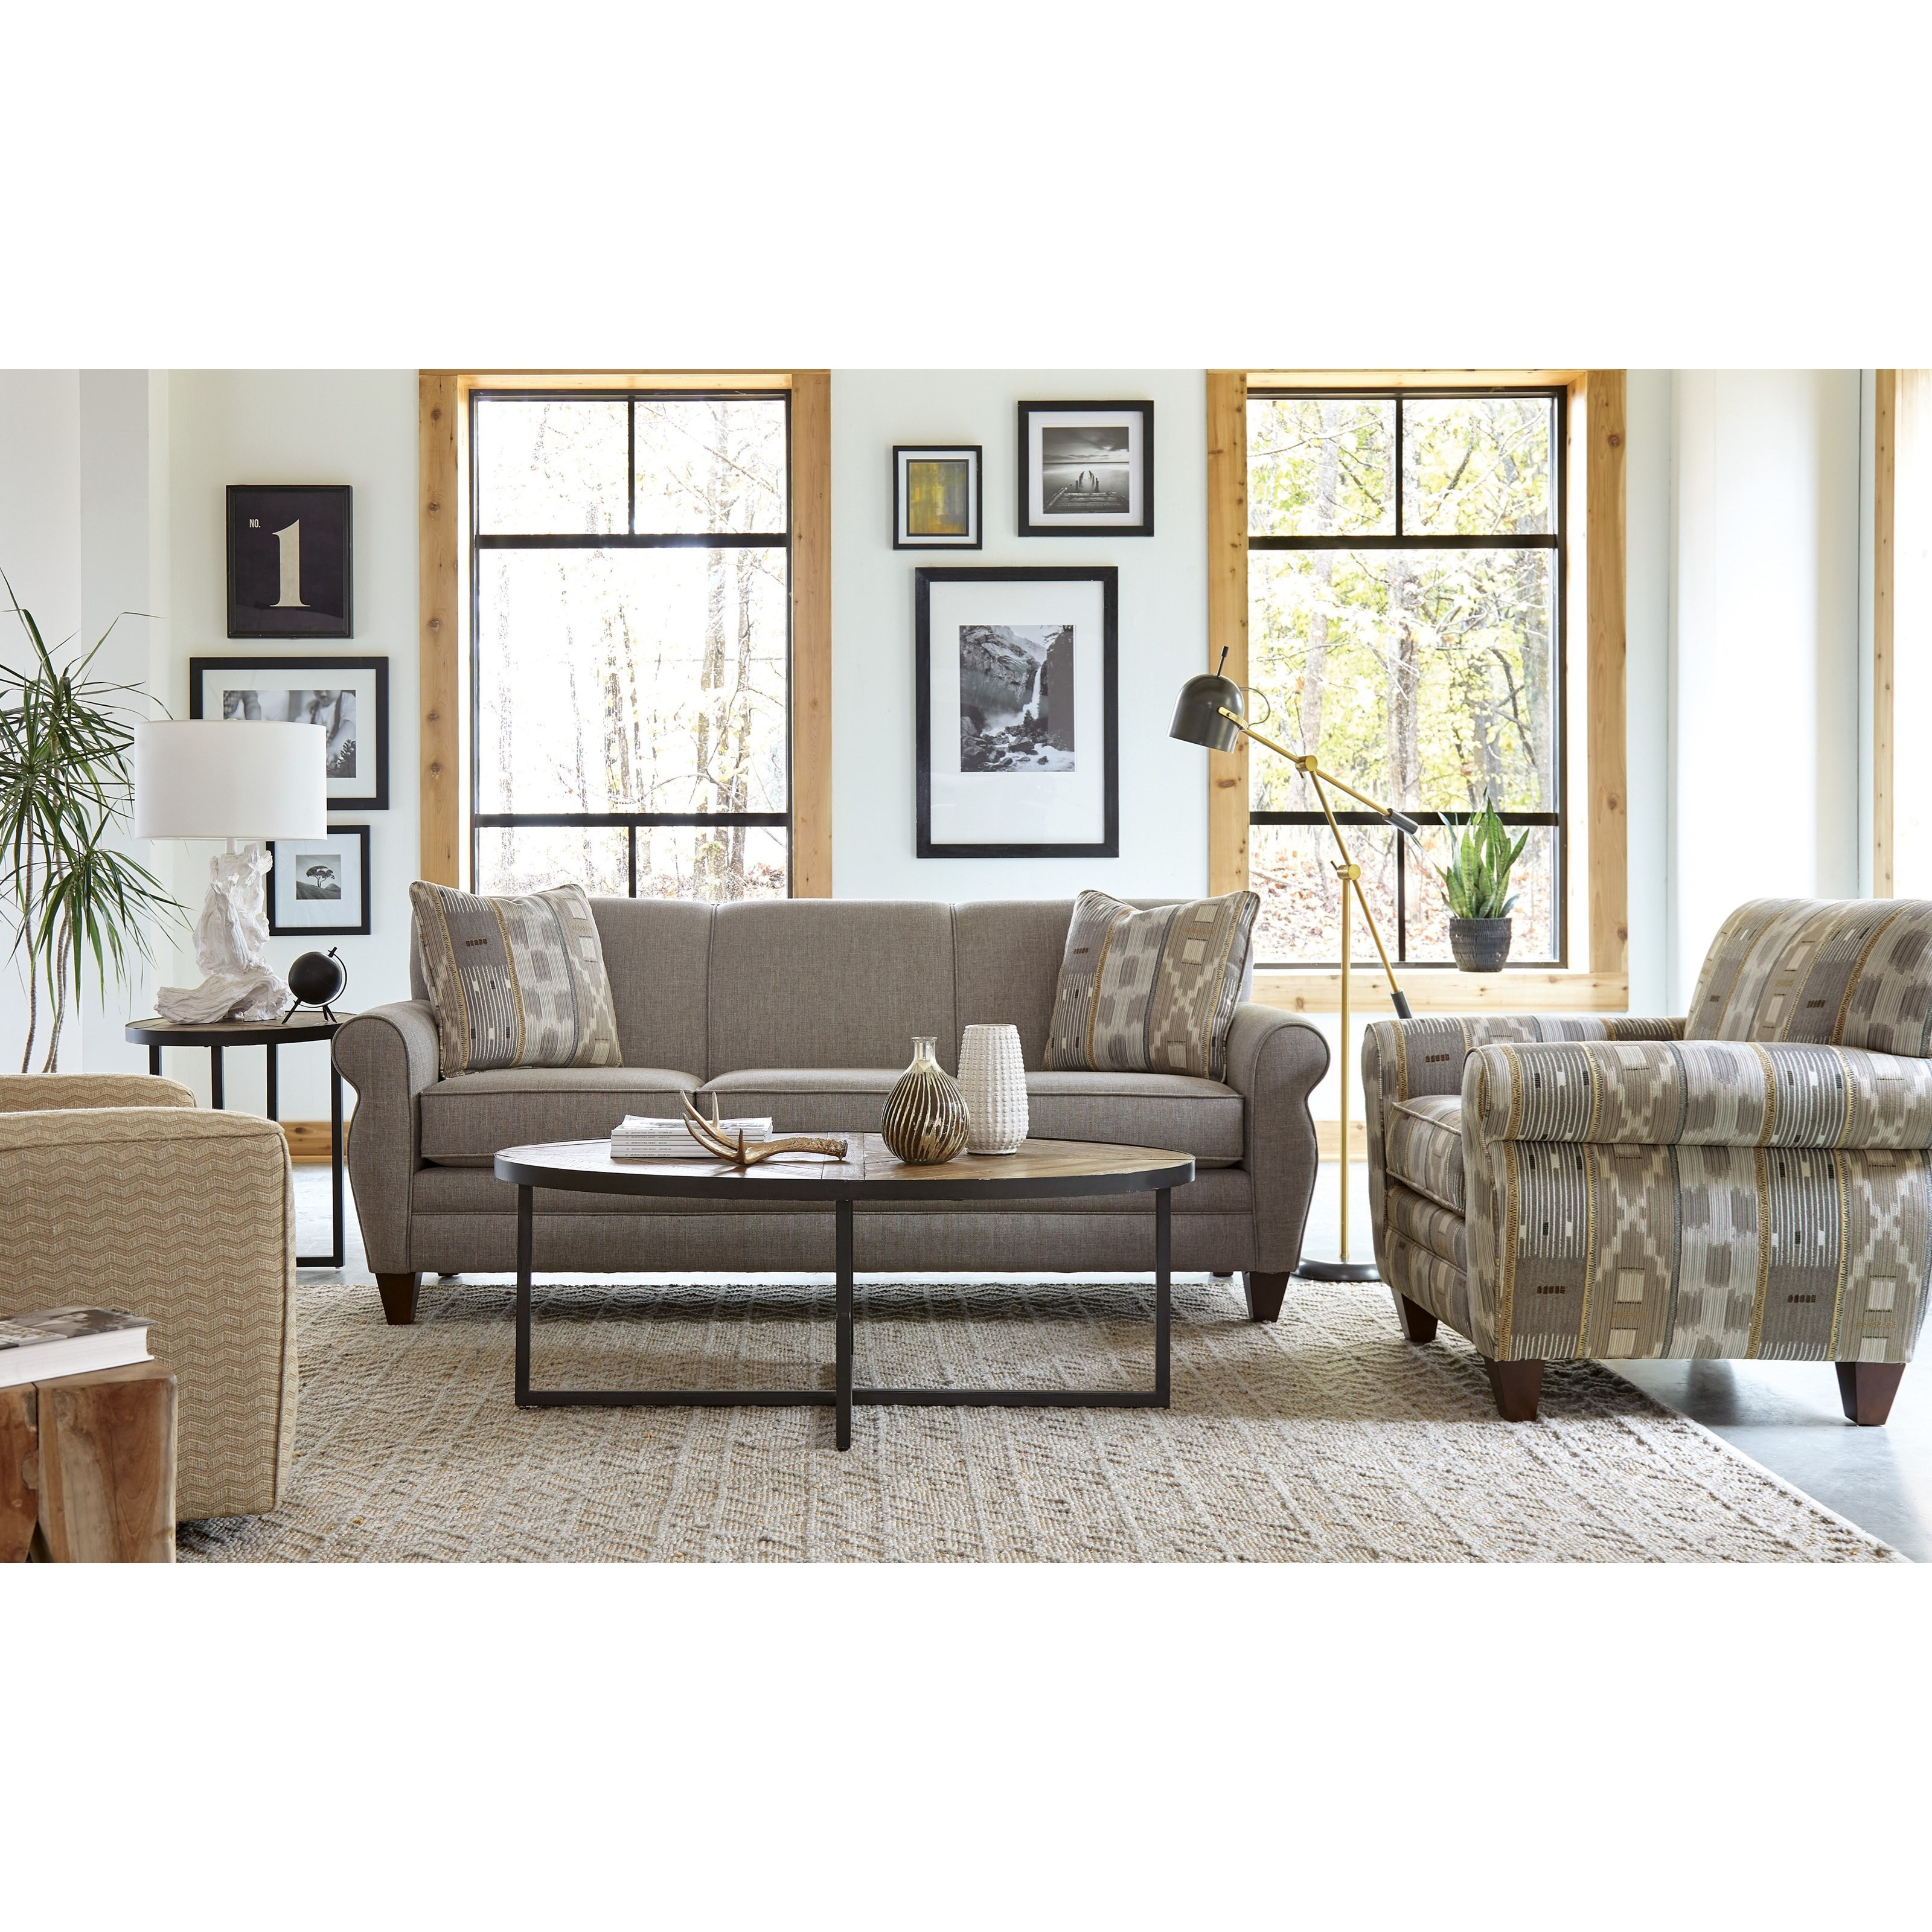 7388 Living Room Group by Craftmaster at Baer's Furniture